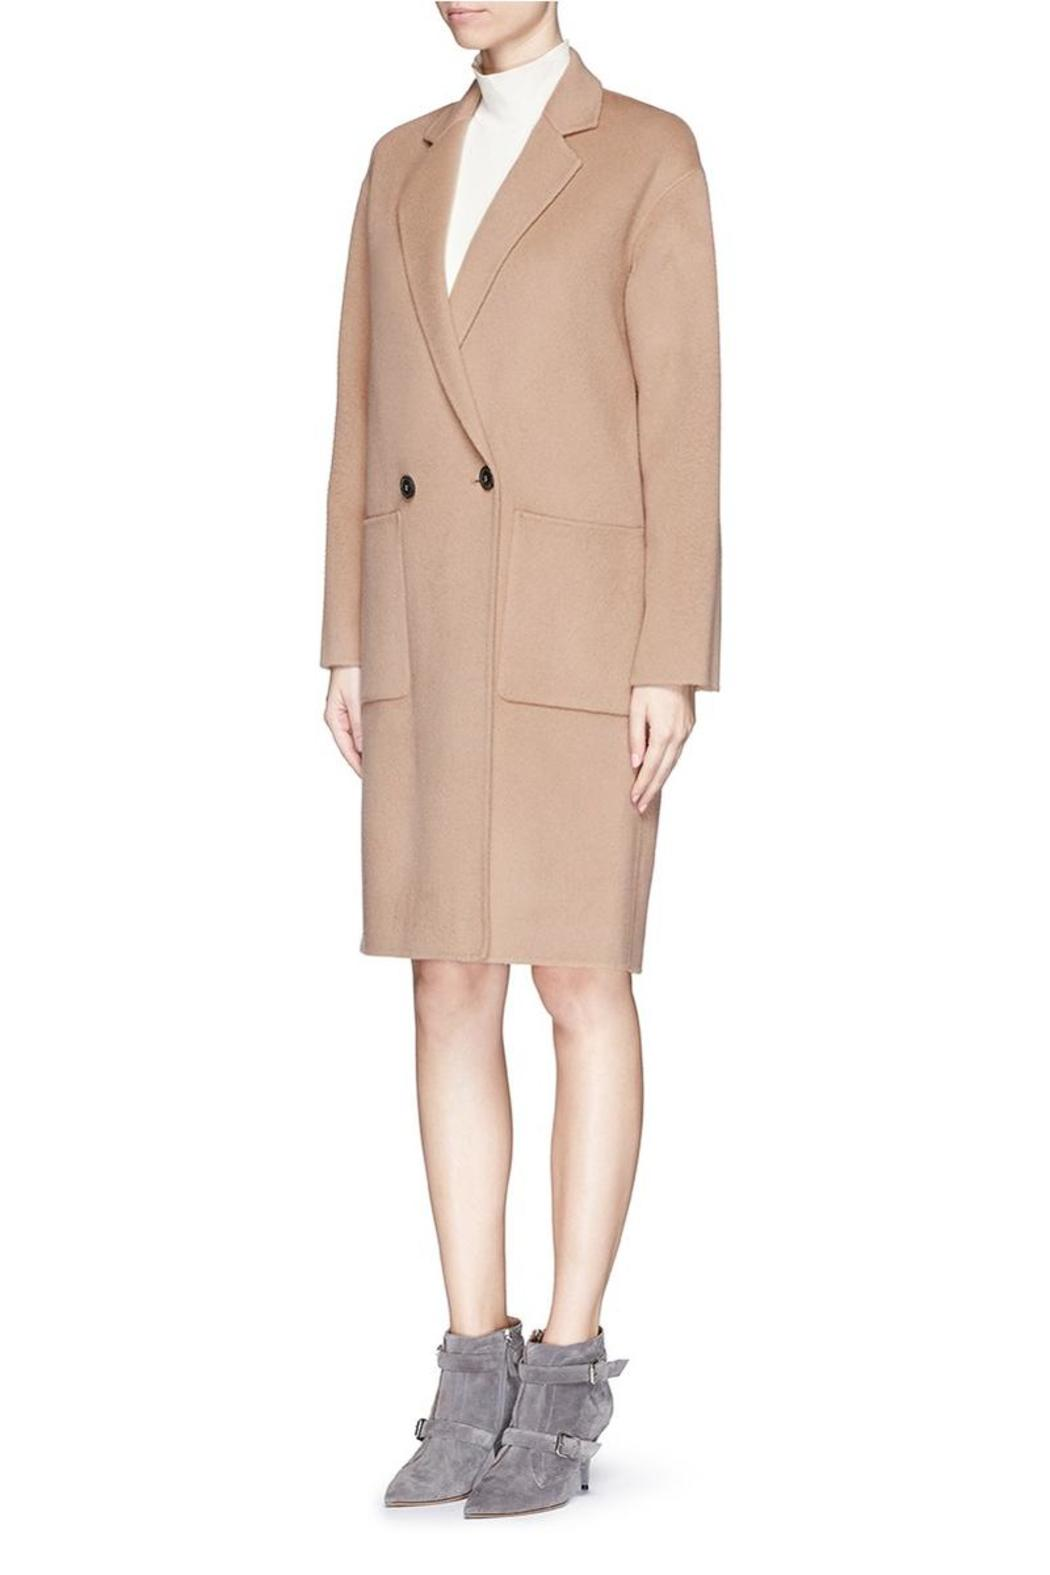 Theory Eletkah Wool Cashmere Coat from West Loop by Another 20